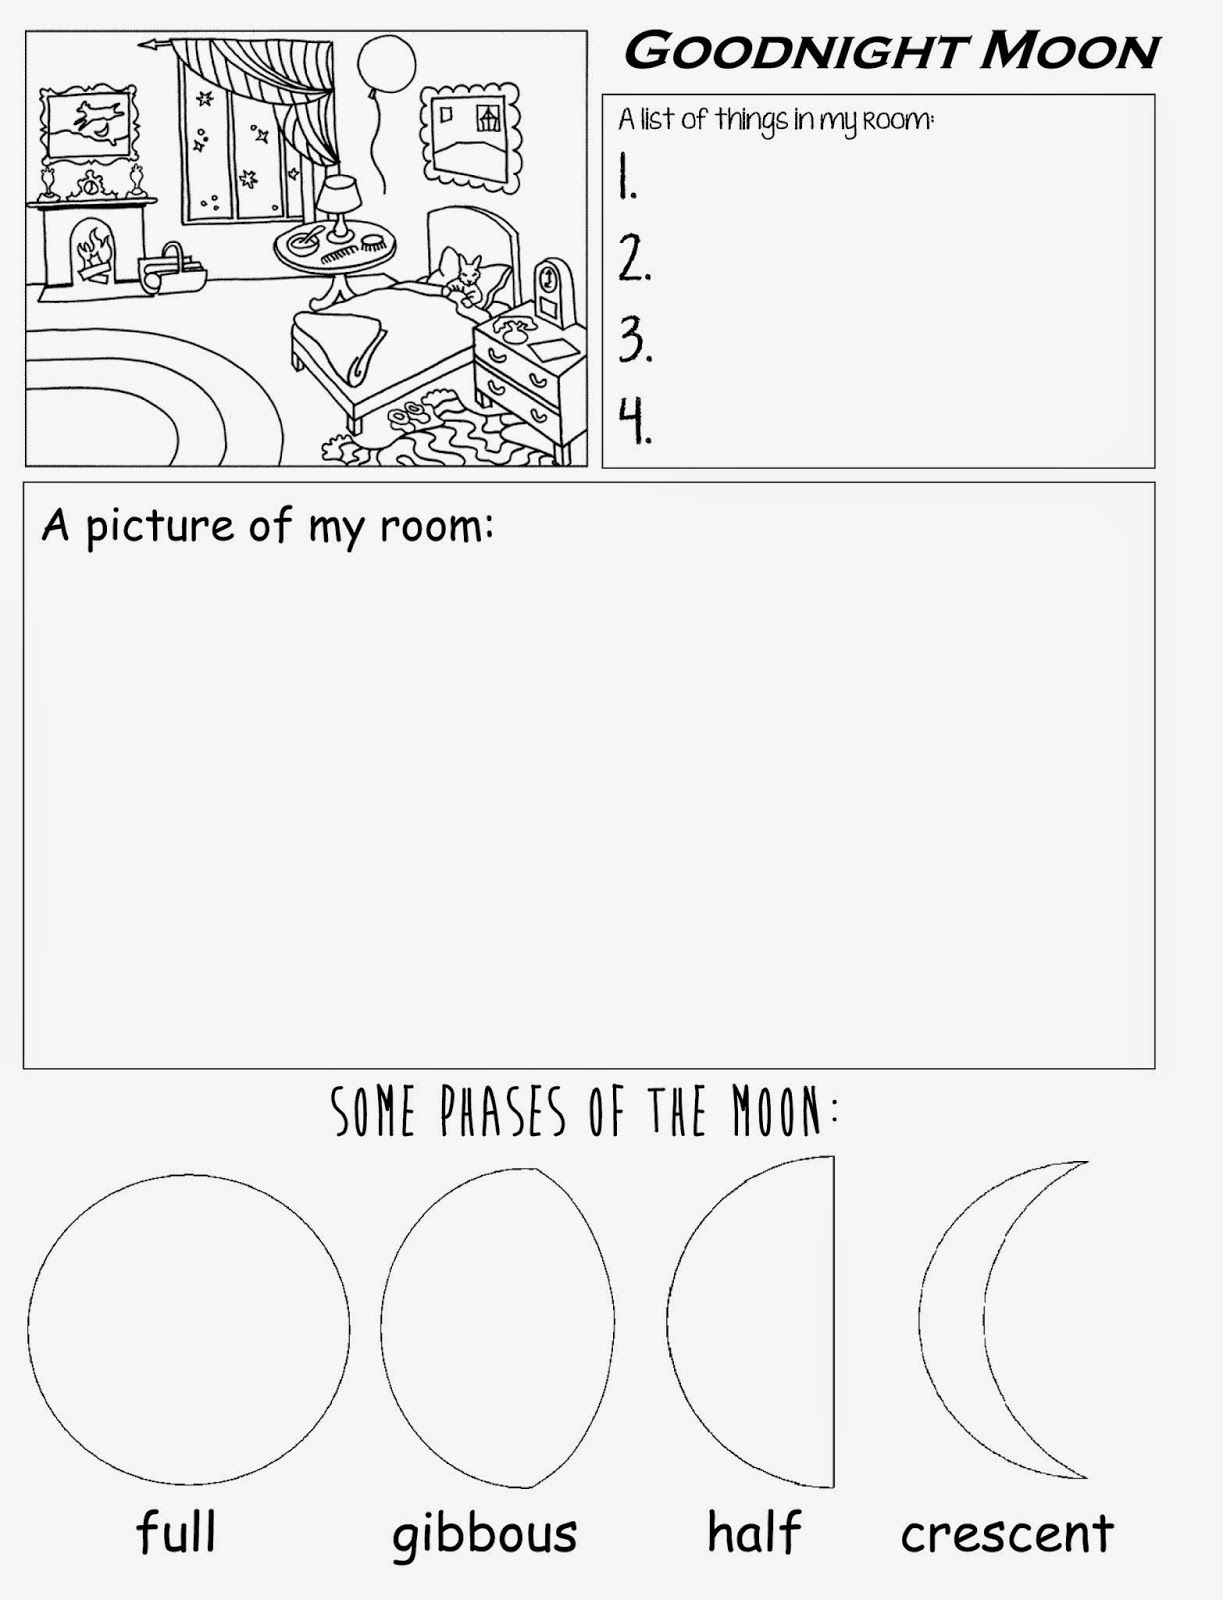 Nocturnal Animals Printable Pack Printables For Kids Preschool